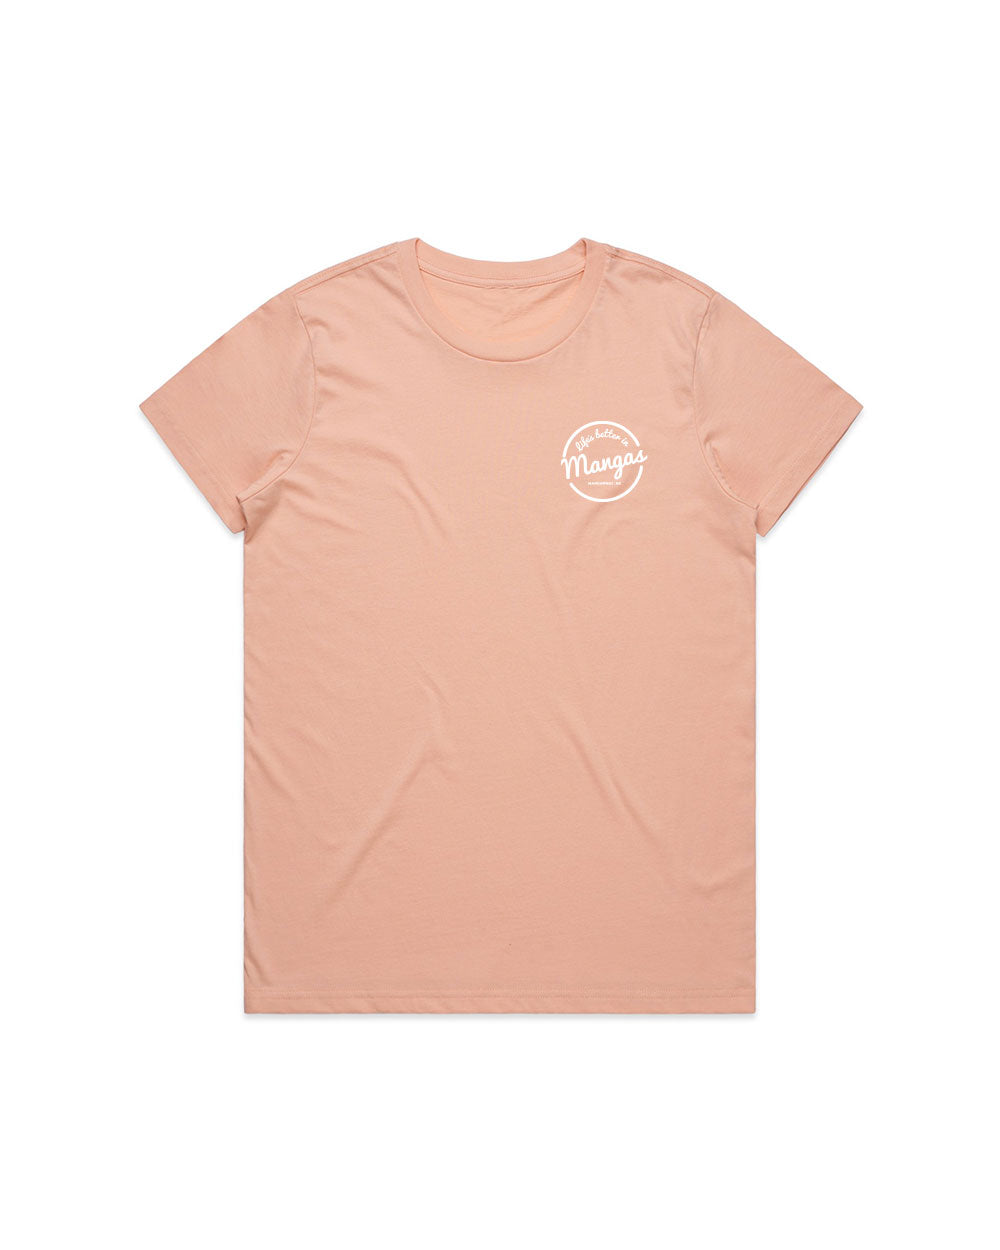 Ladies Life's Better Pink Tee - Threadbox